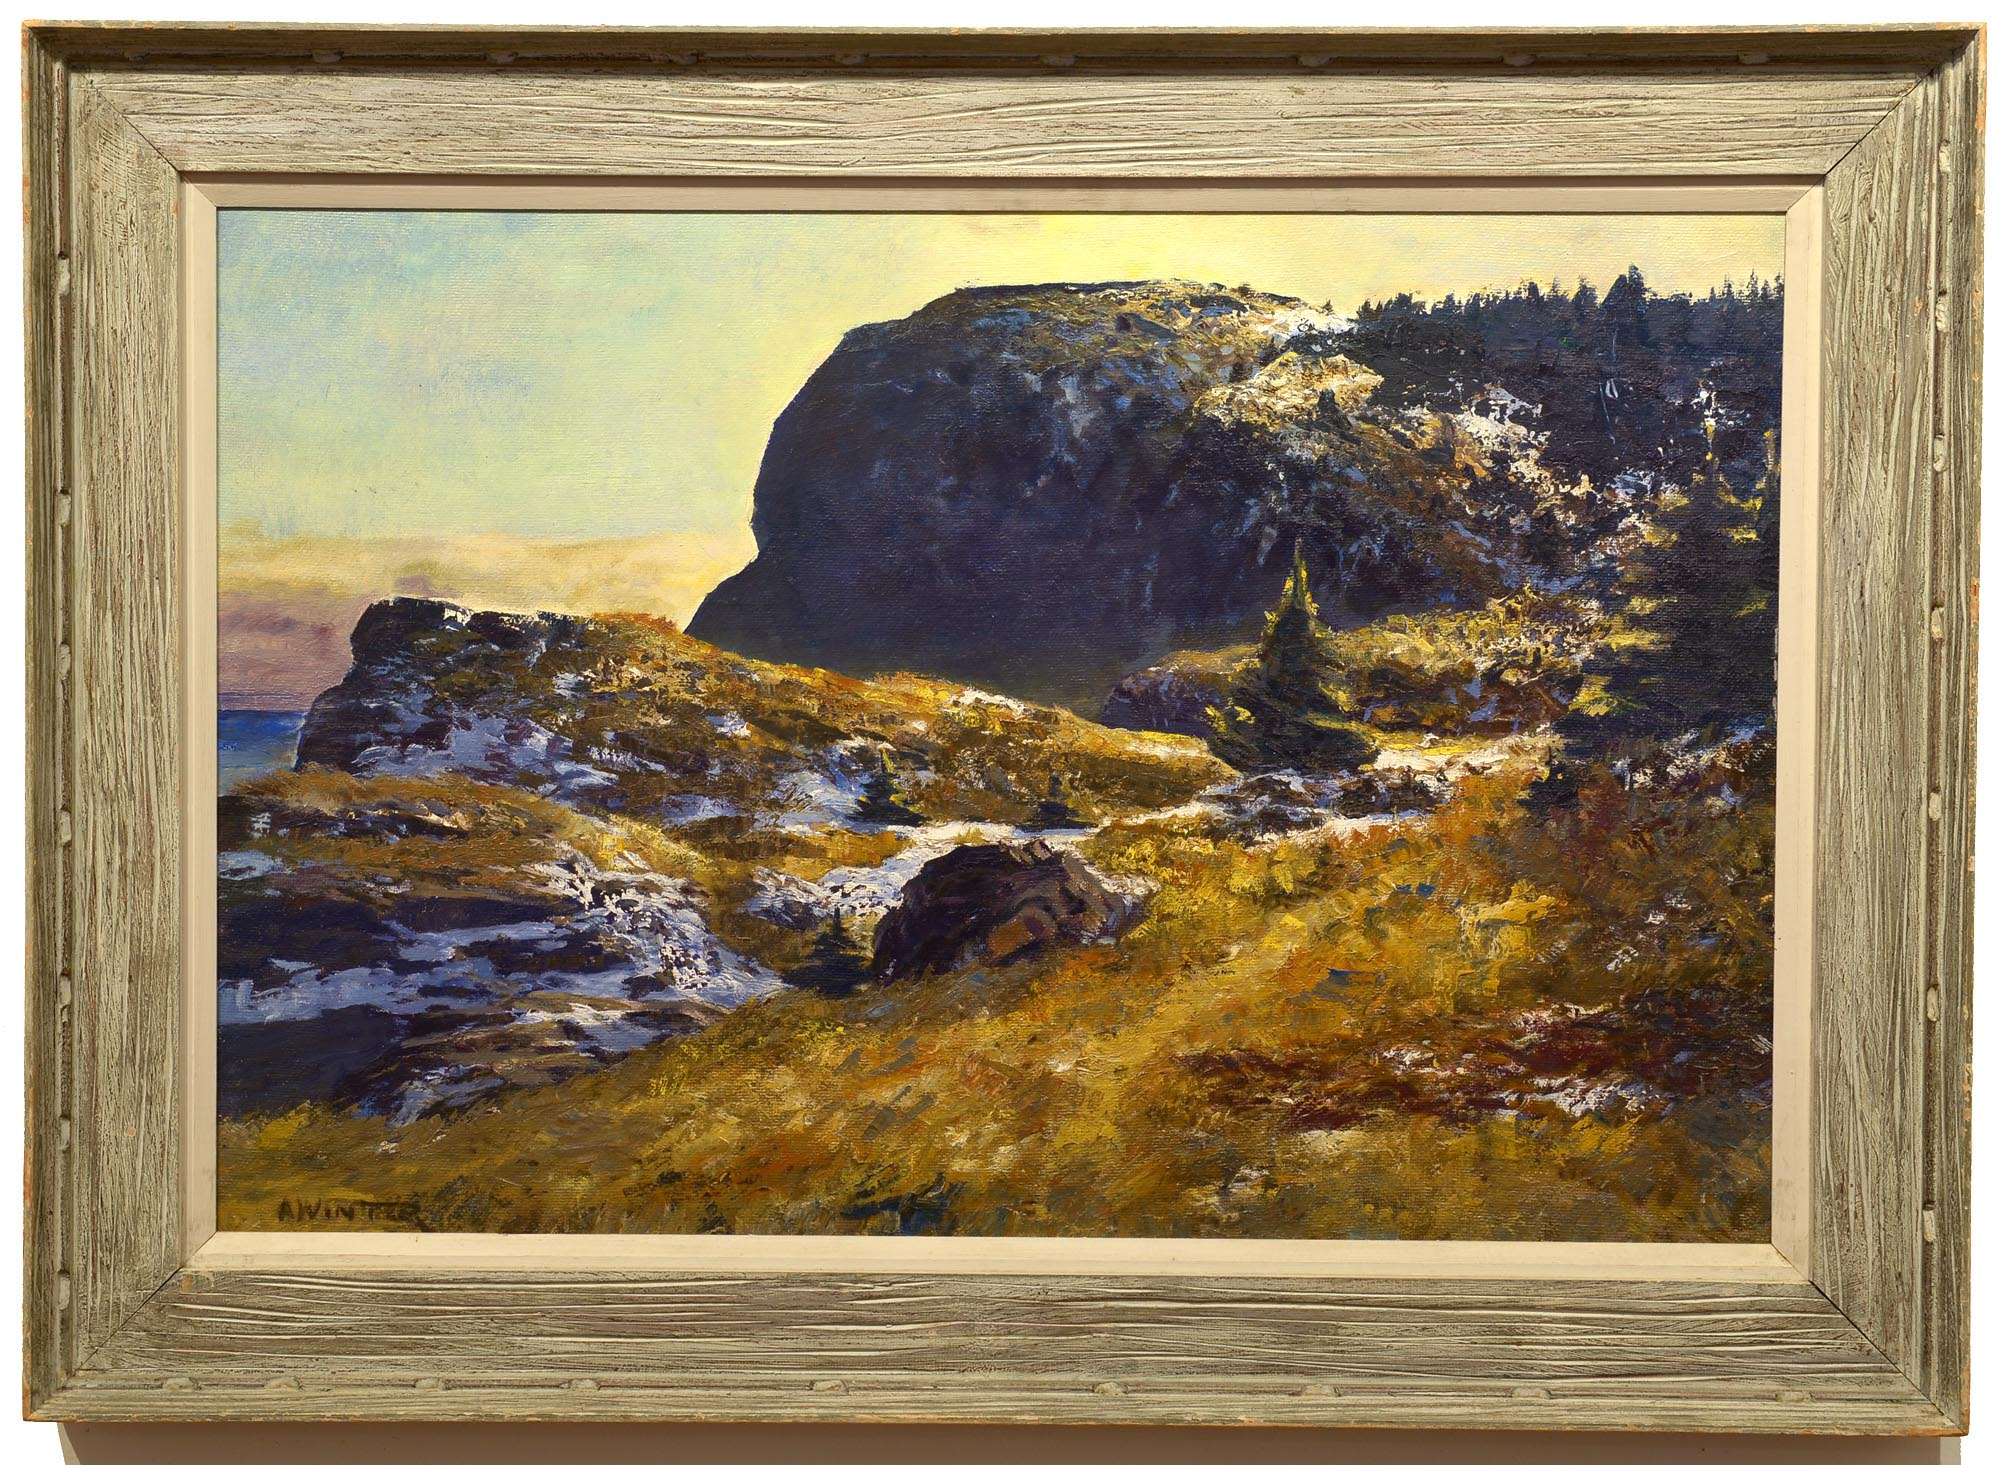 Andrew Winter Late Afternoon, Whitehead framed